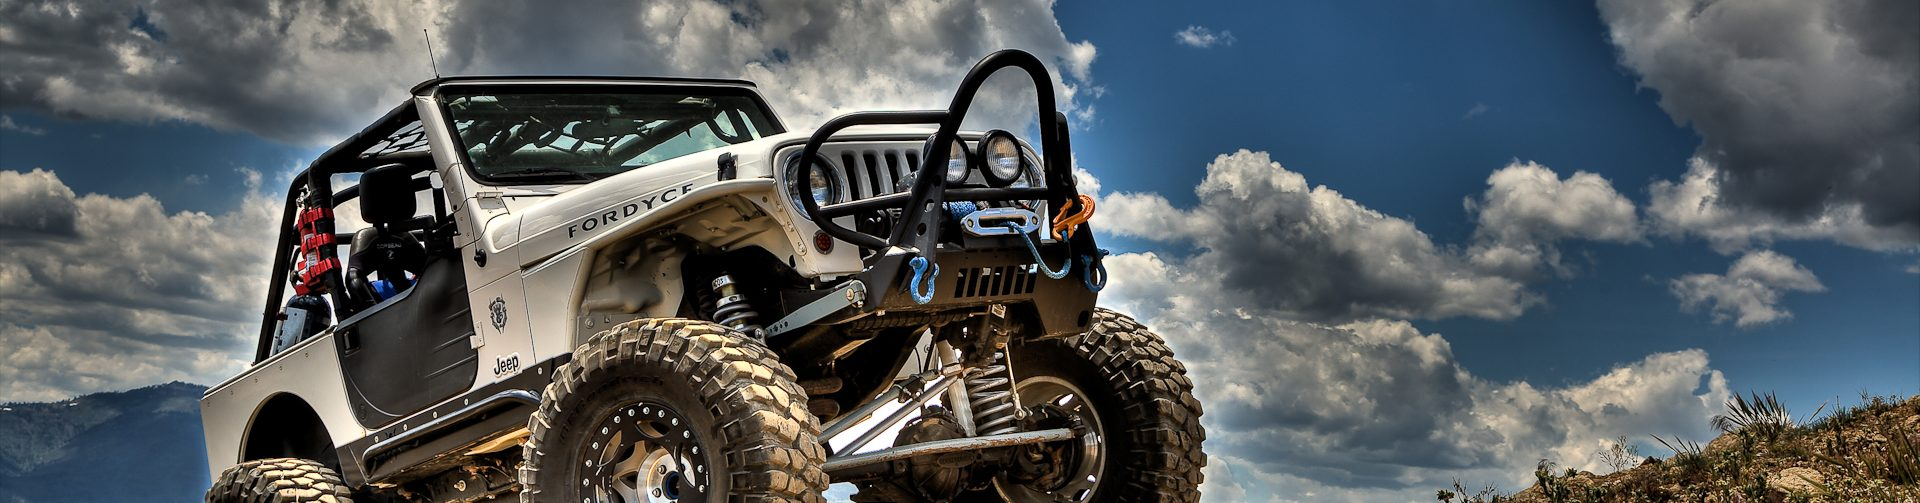 Are Gas or Diesel Engines Better for Off-Roading?